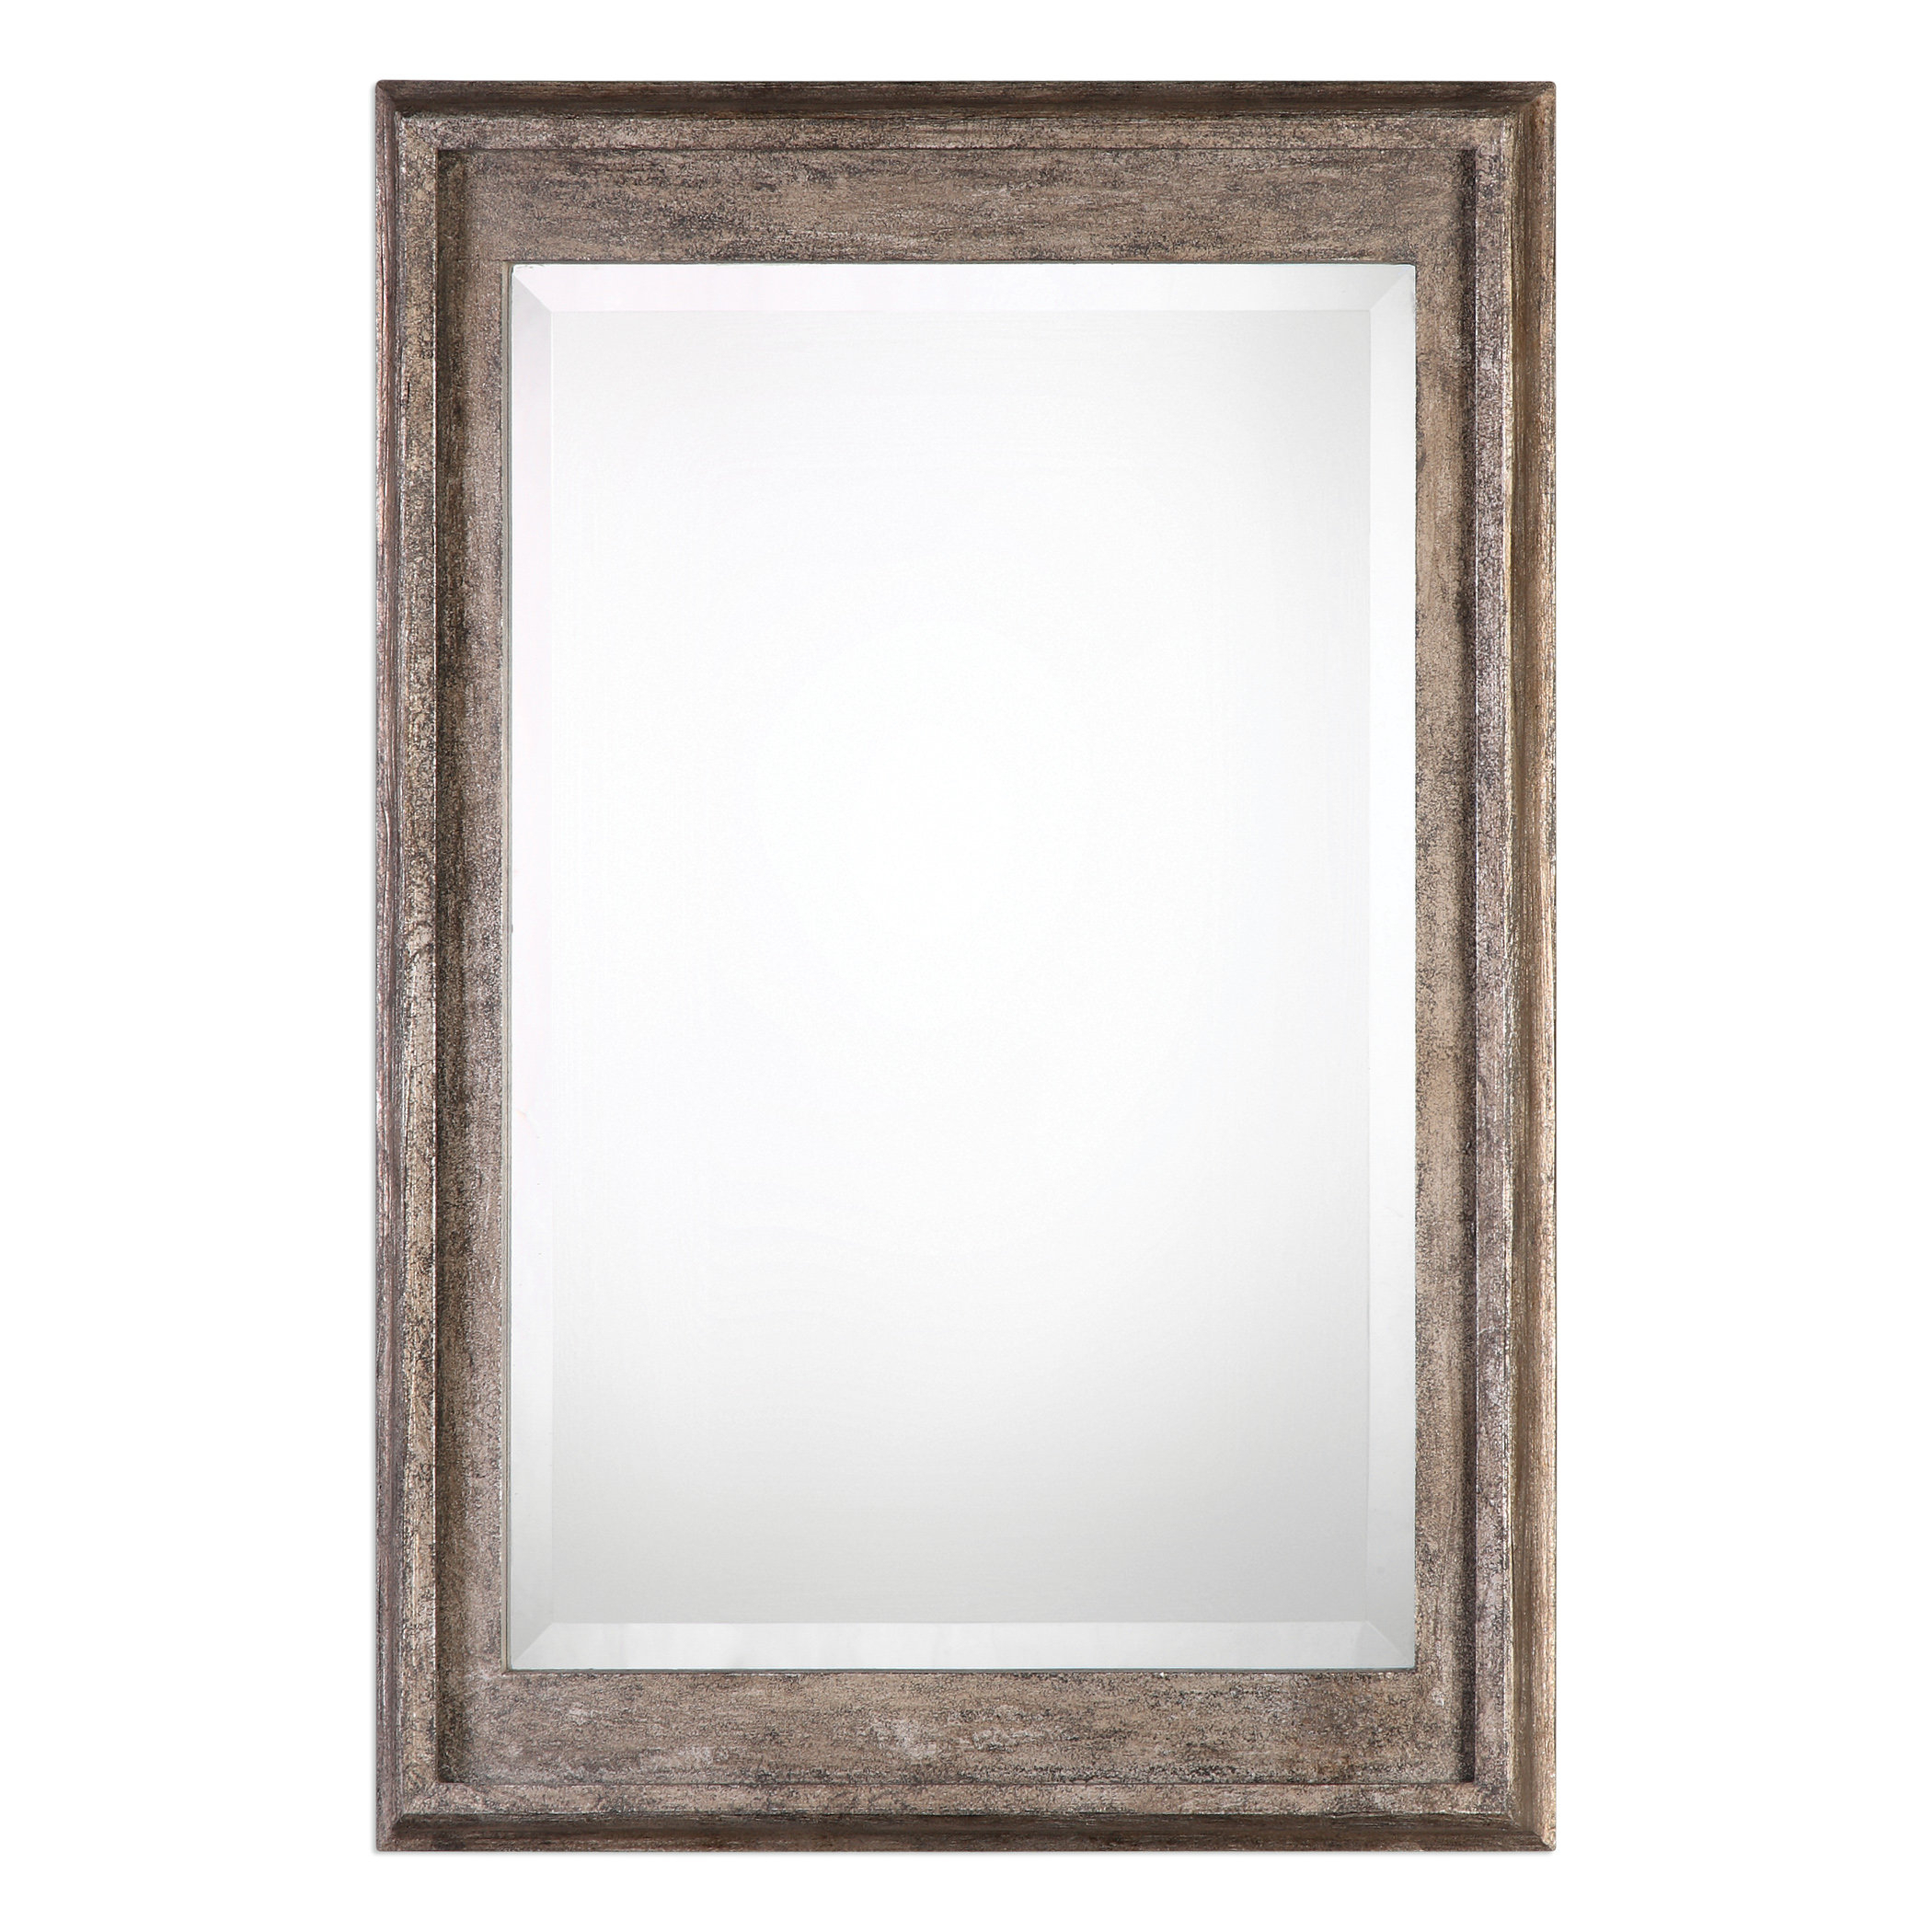 Mercury Glass Framed Mirror | Wayfair For Caja Rectangle Glass Frame Wall Mirrors (View 6 of 30)